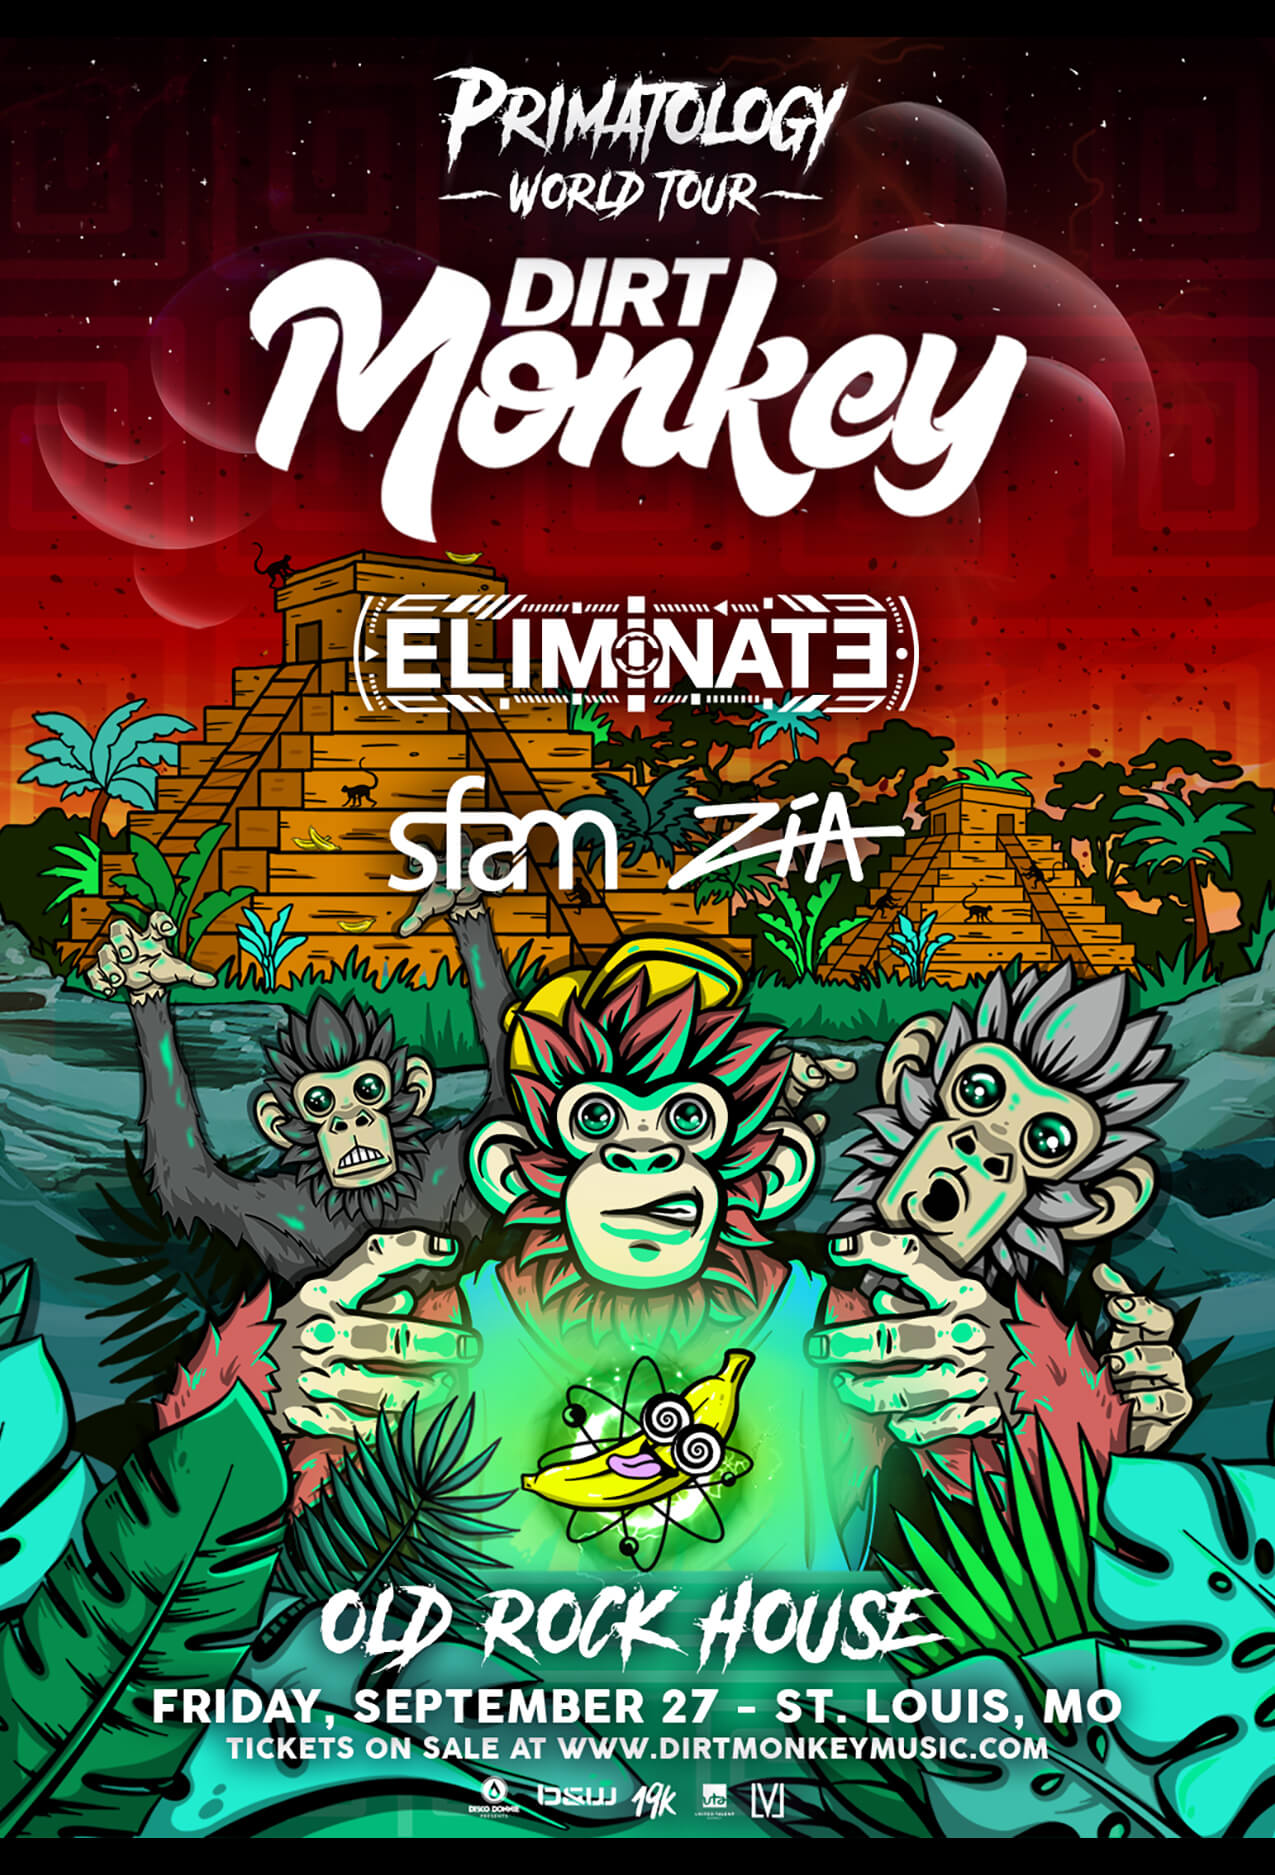 Dirt Monkey, Eliminate, sfam, Zia in St Louis